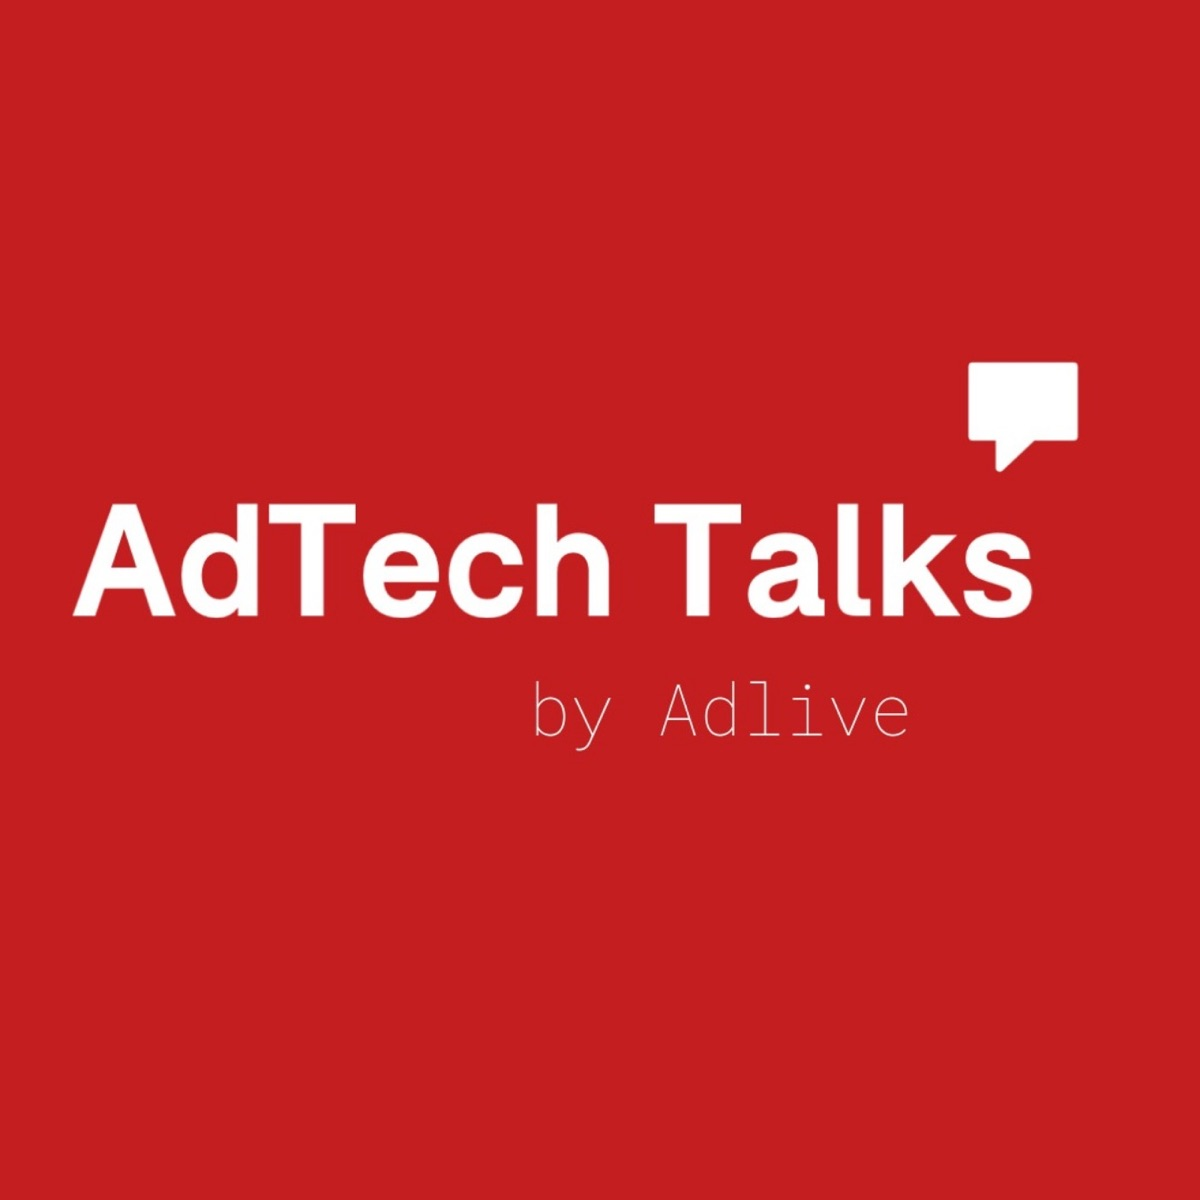 Adtech Talks by Adlive